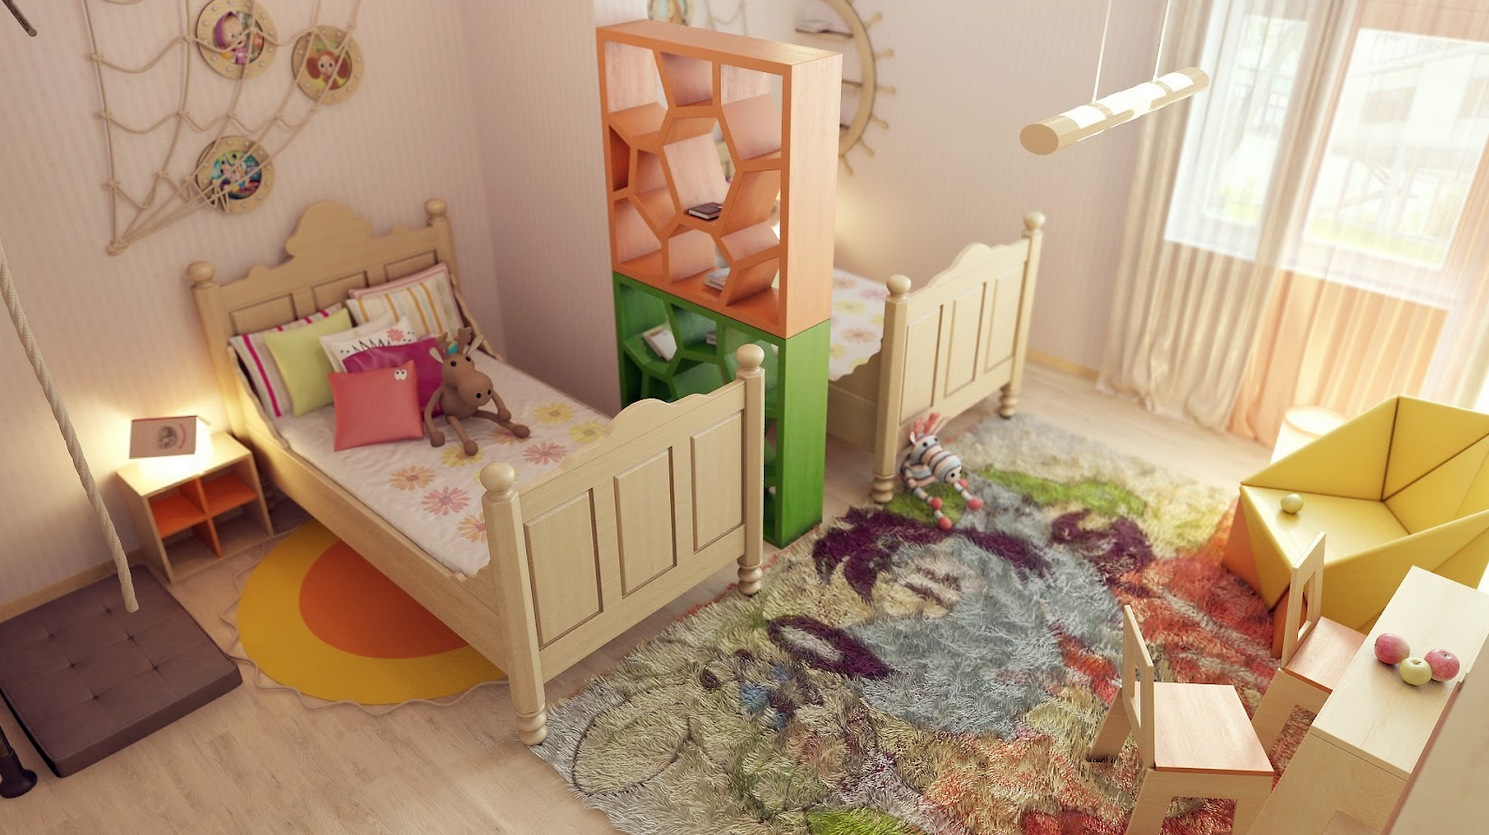 Shared Childrens Room Divider Idea Interior Design Ideas